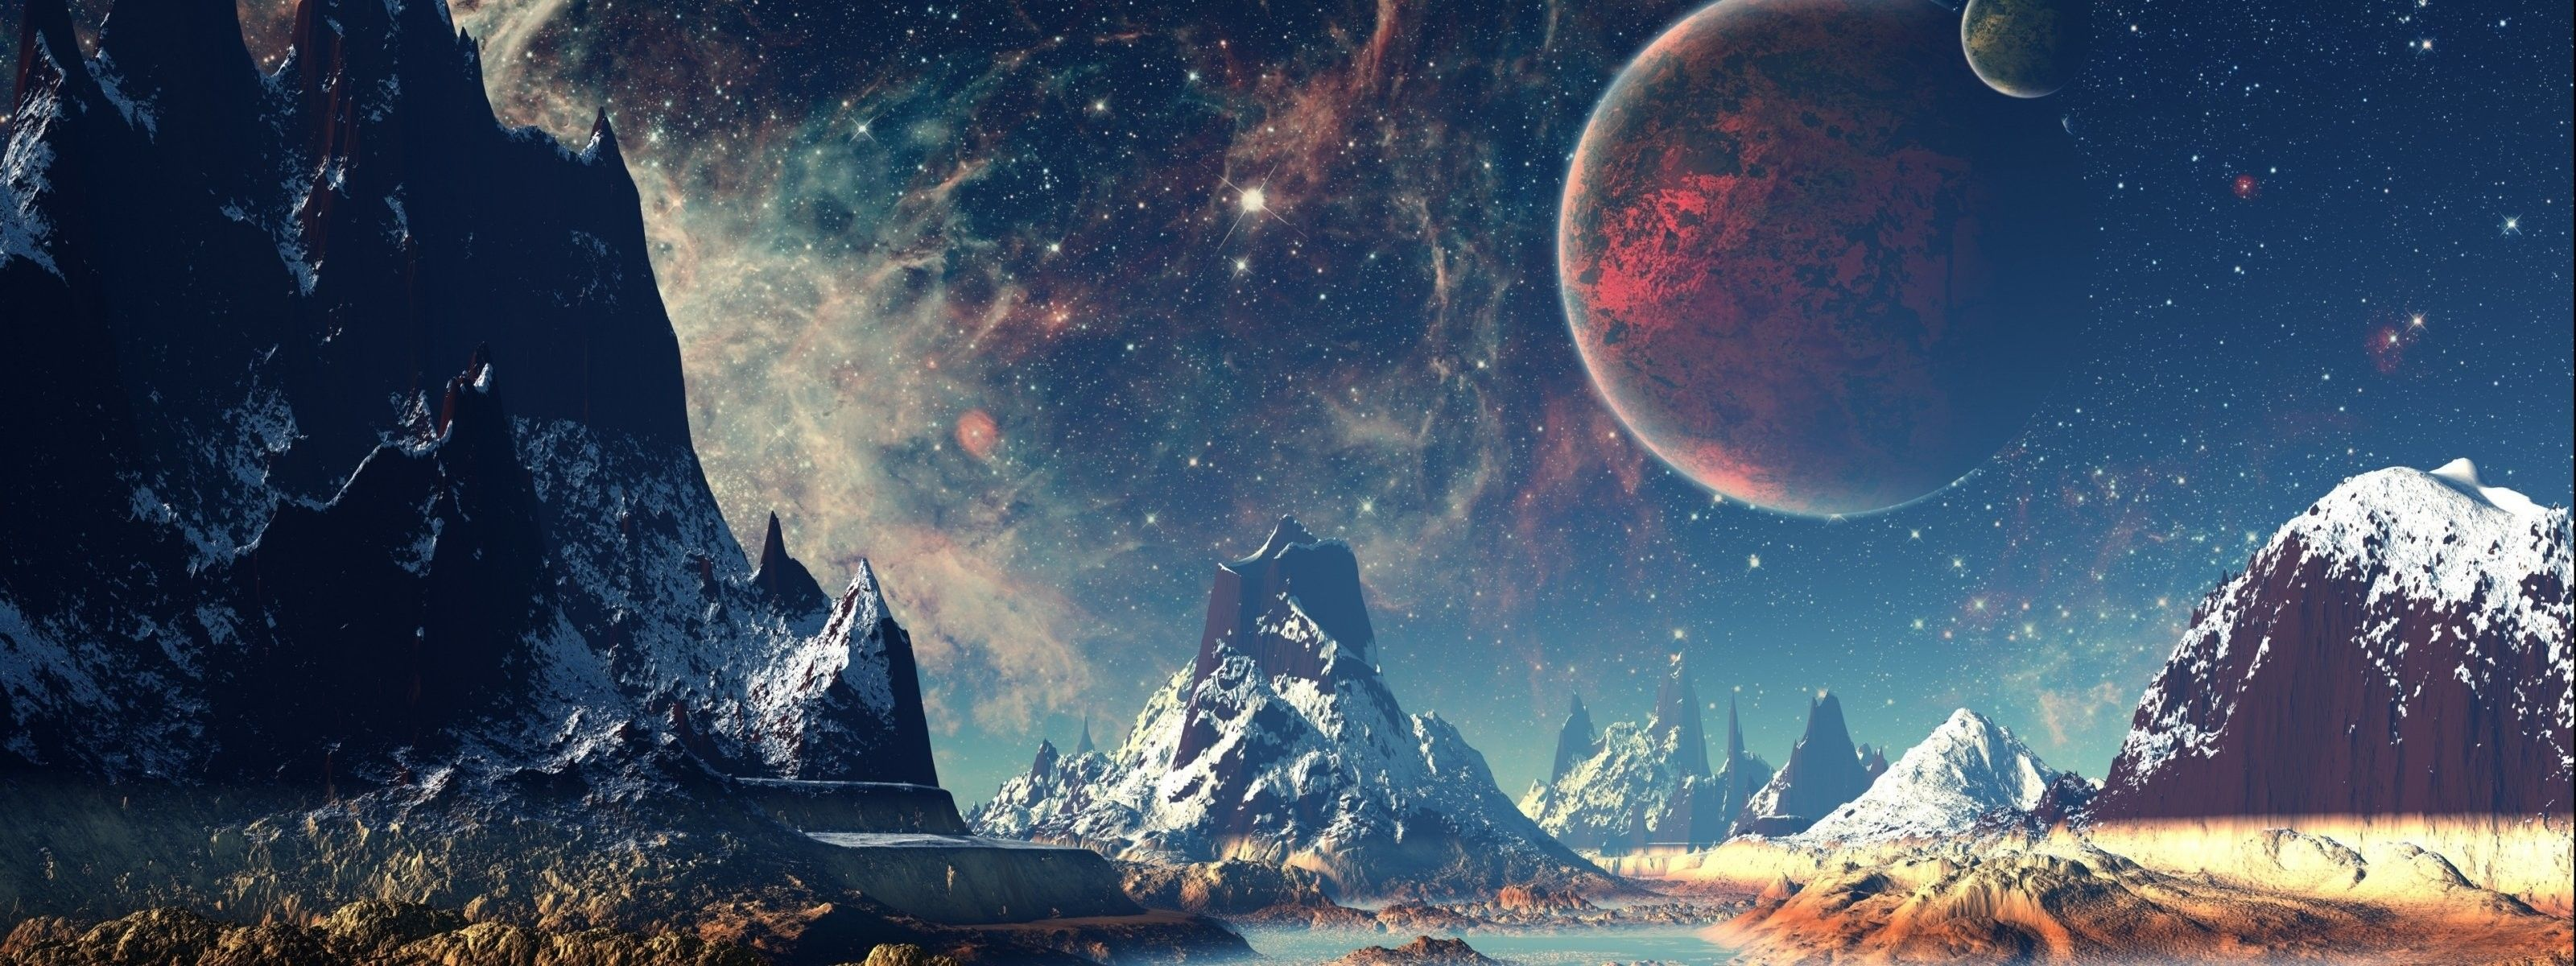 3200x1200 Dual Monitor Wallpapers Space (62+ background